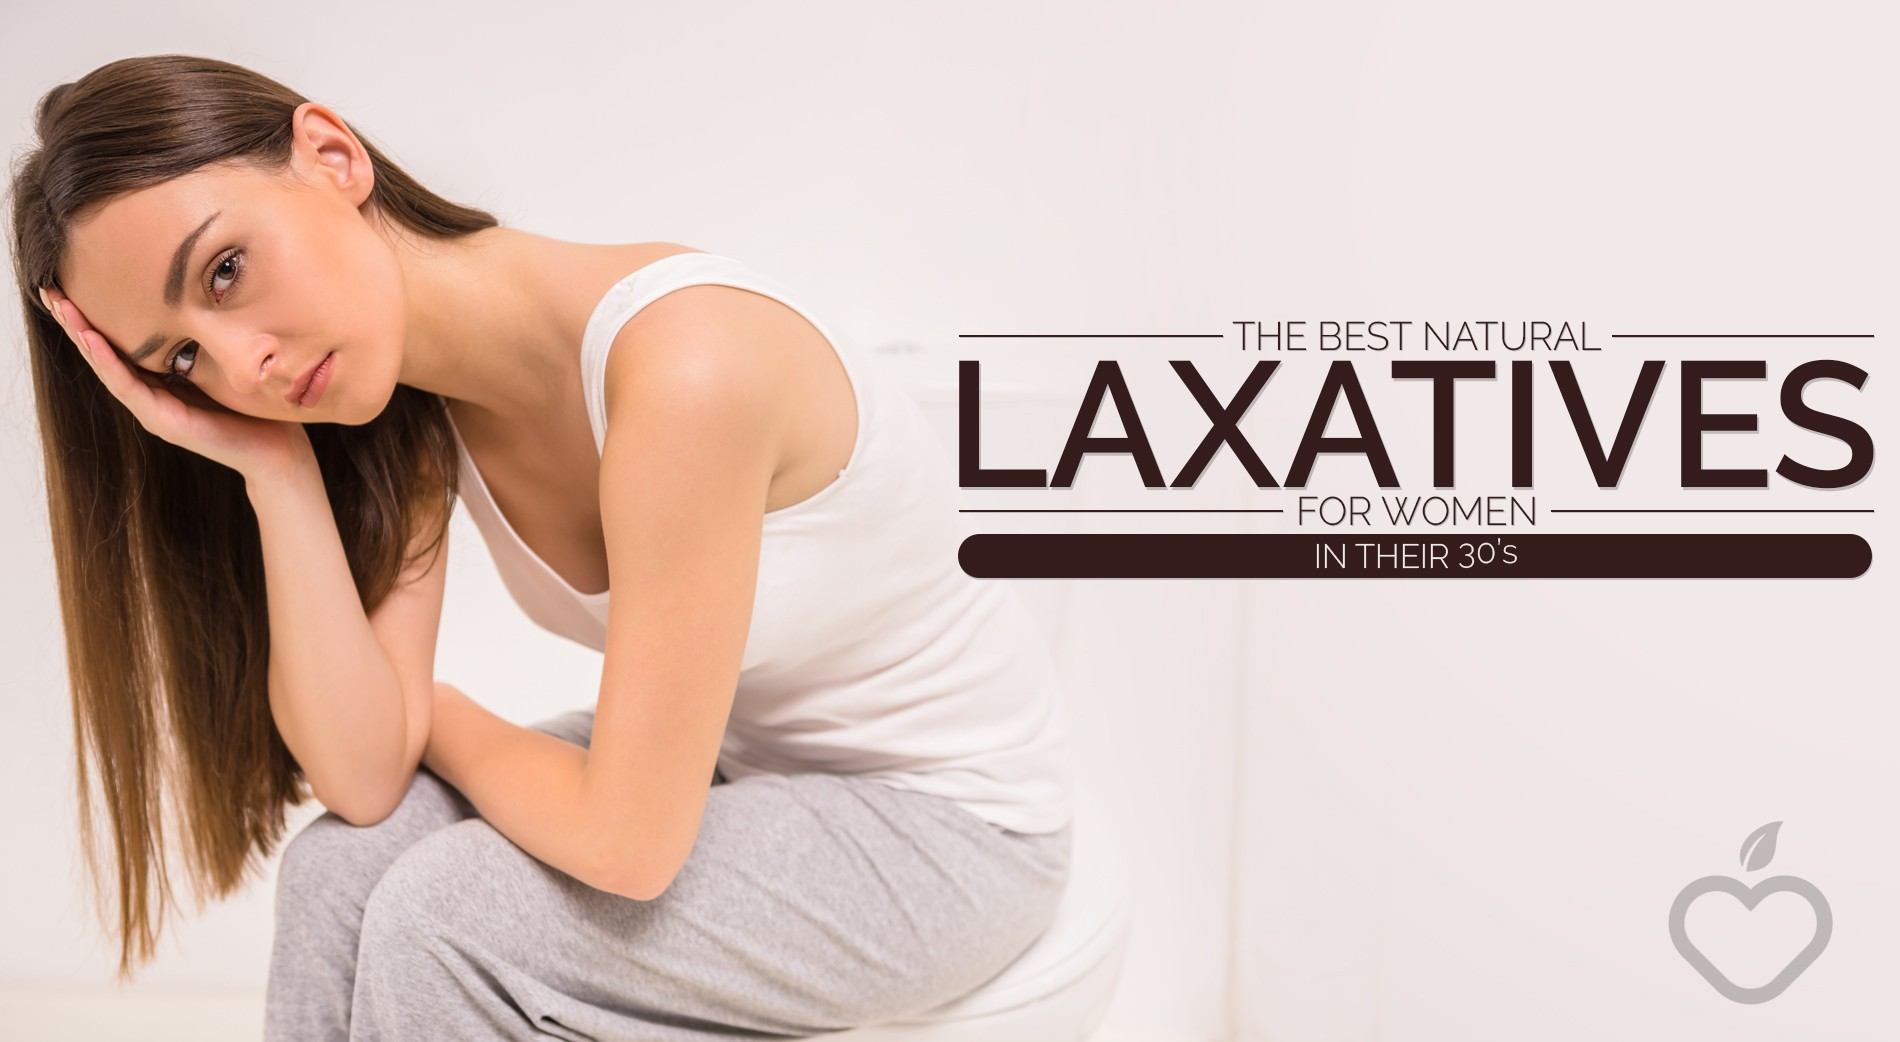 Laxatives Image Design 1 - The Best Natural Laxatives For Women In Their 30's